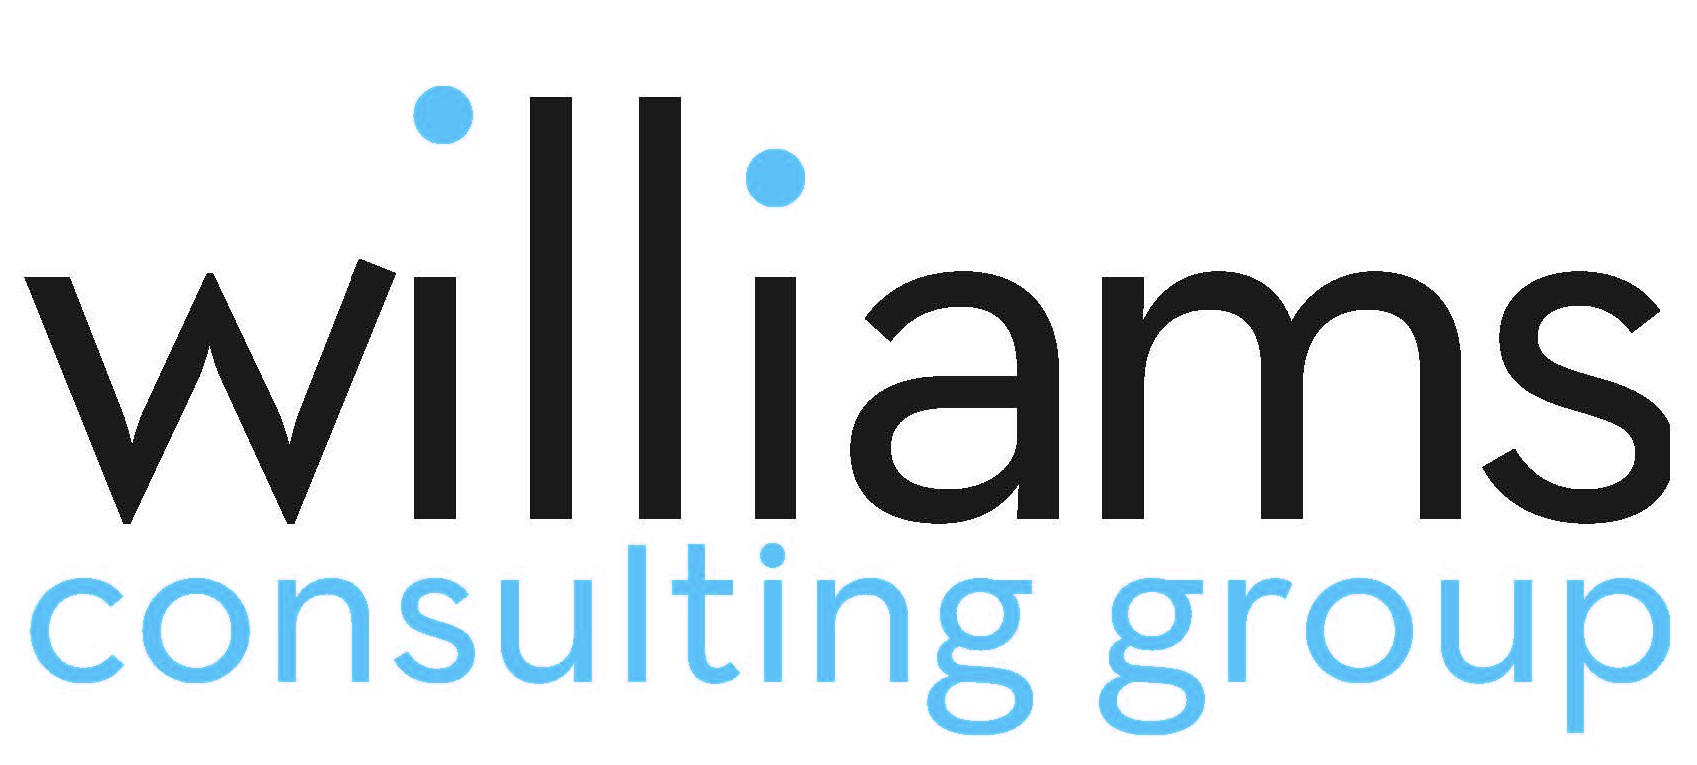 Williams_consulting_logo_PDF(1)